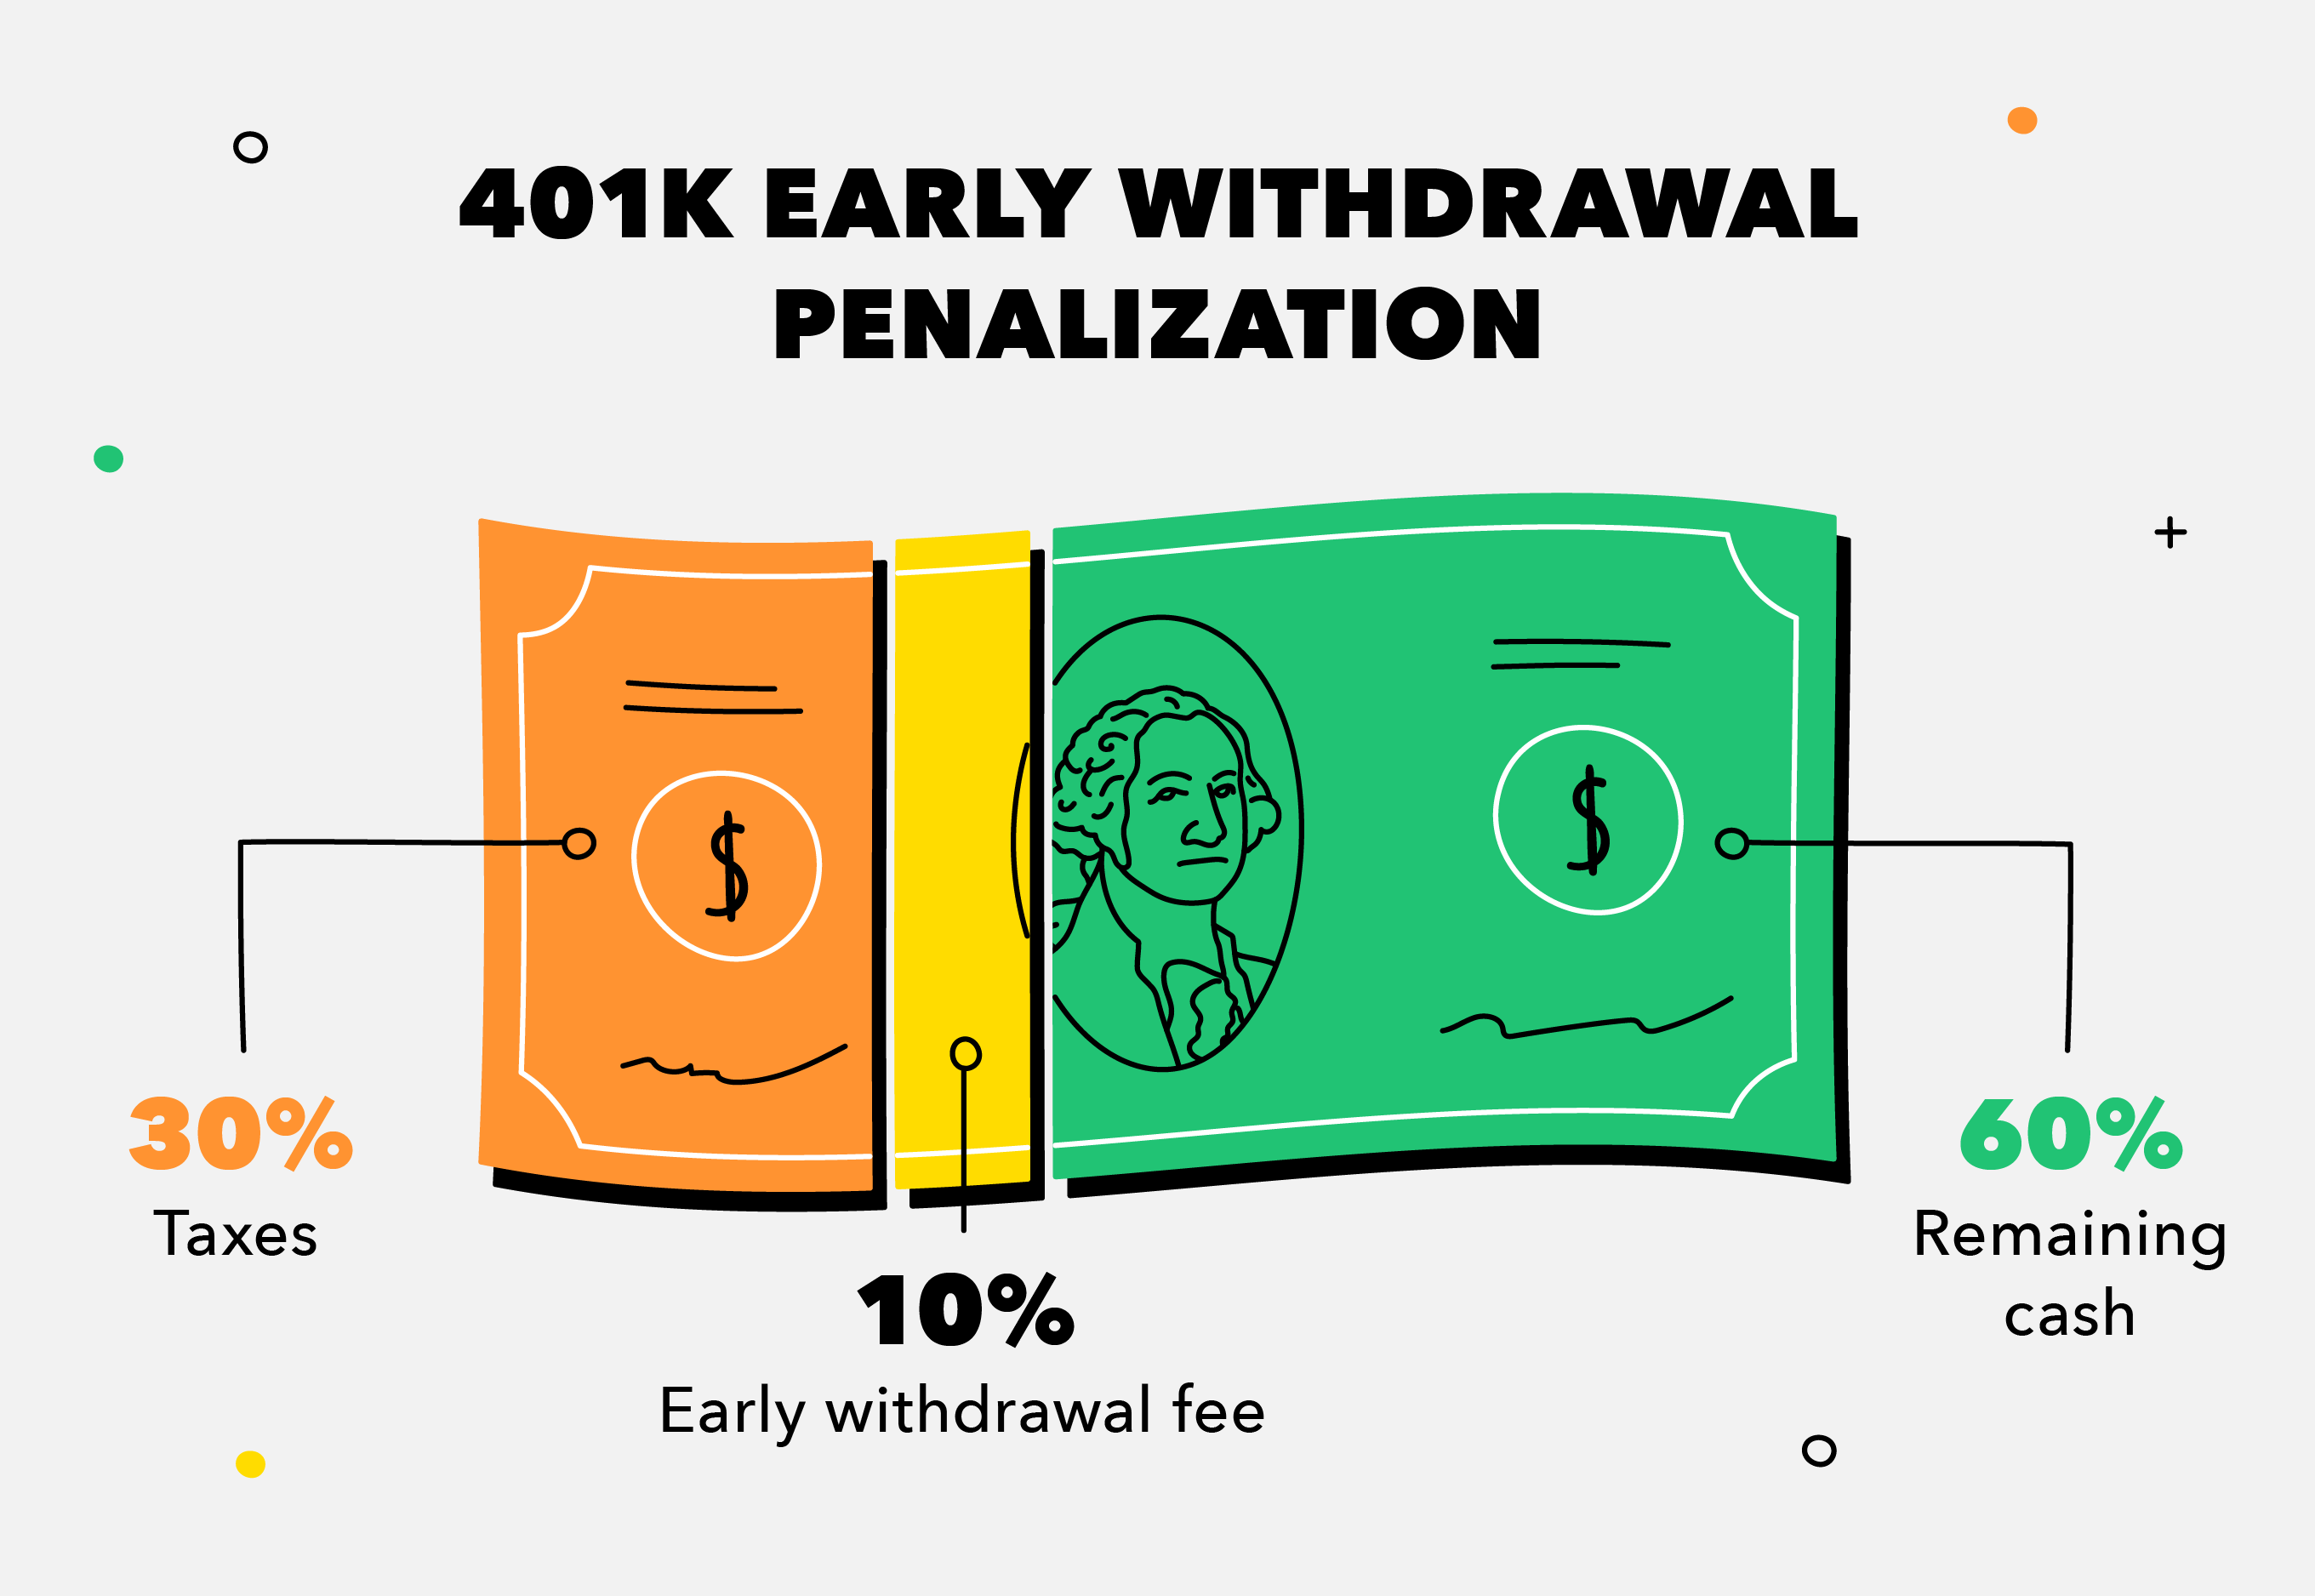 401k early withdrawal penalties